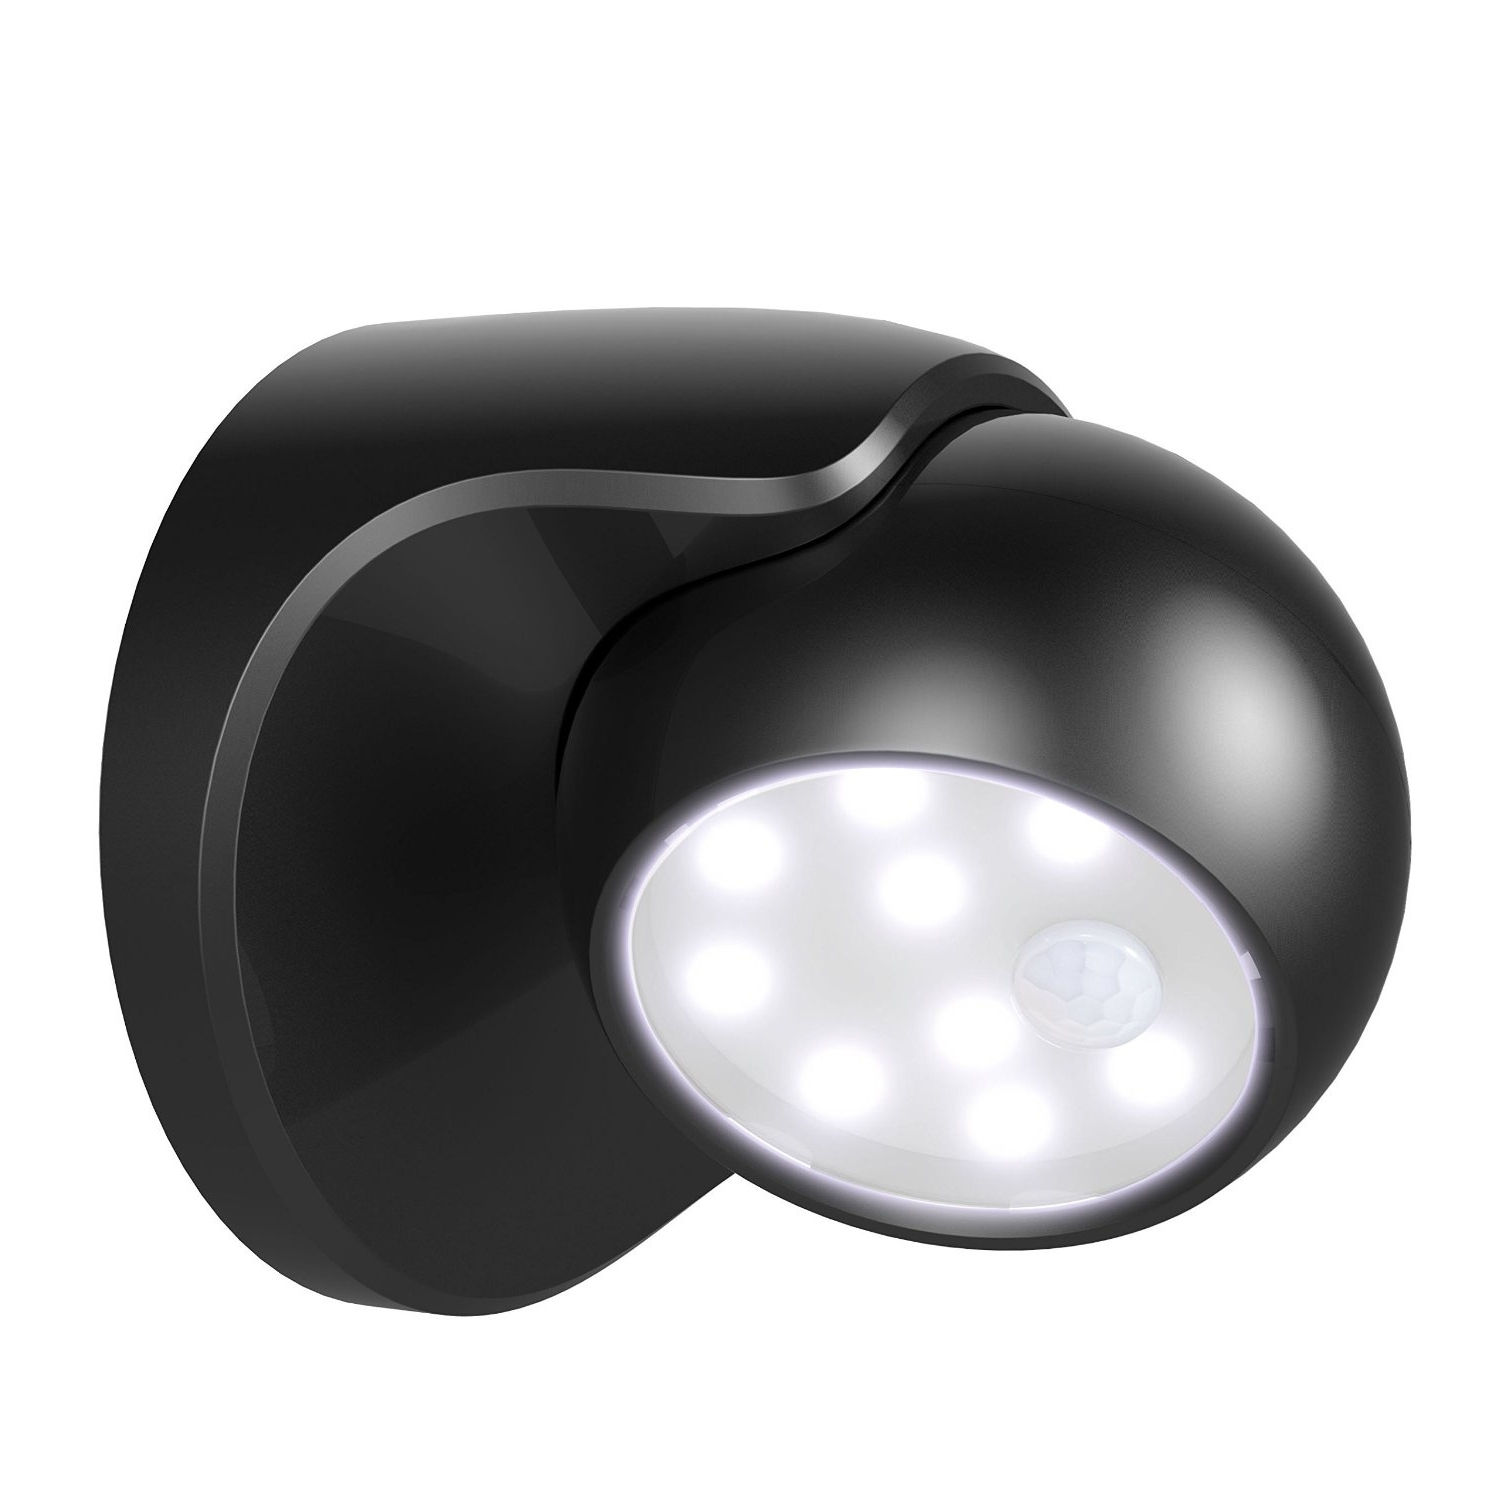 Outdoor Lighting: Amusing Outdoor Ceiling Sensor Light Best Outdoor Within Well Liked Battery Operated Outdoor Lights At Wayfair (View 15 of 20)